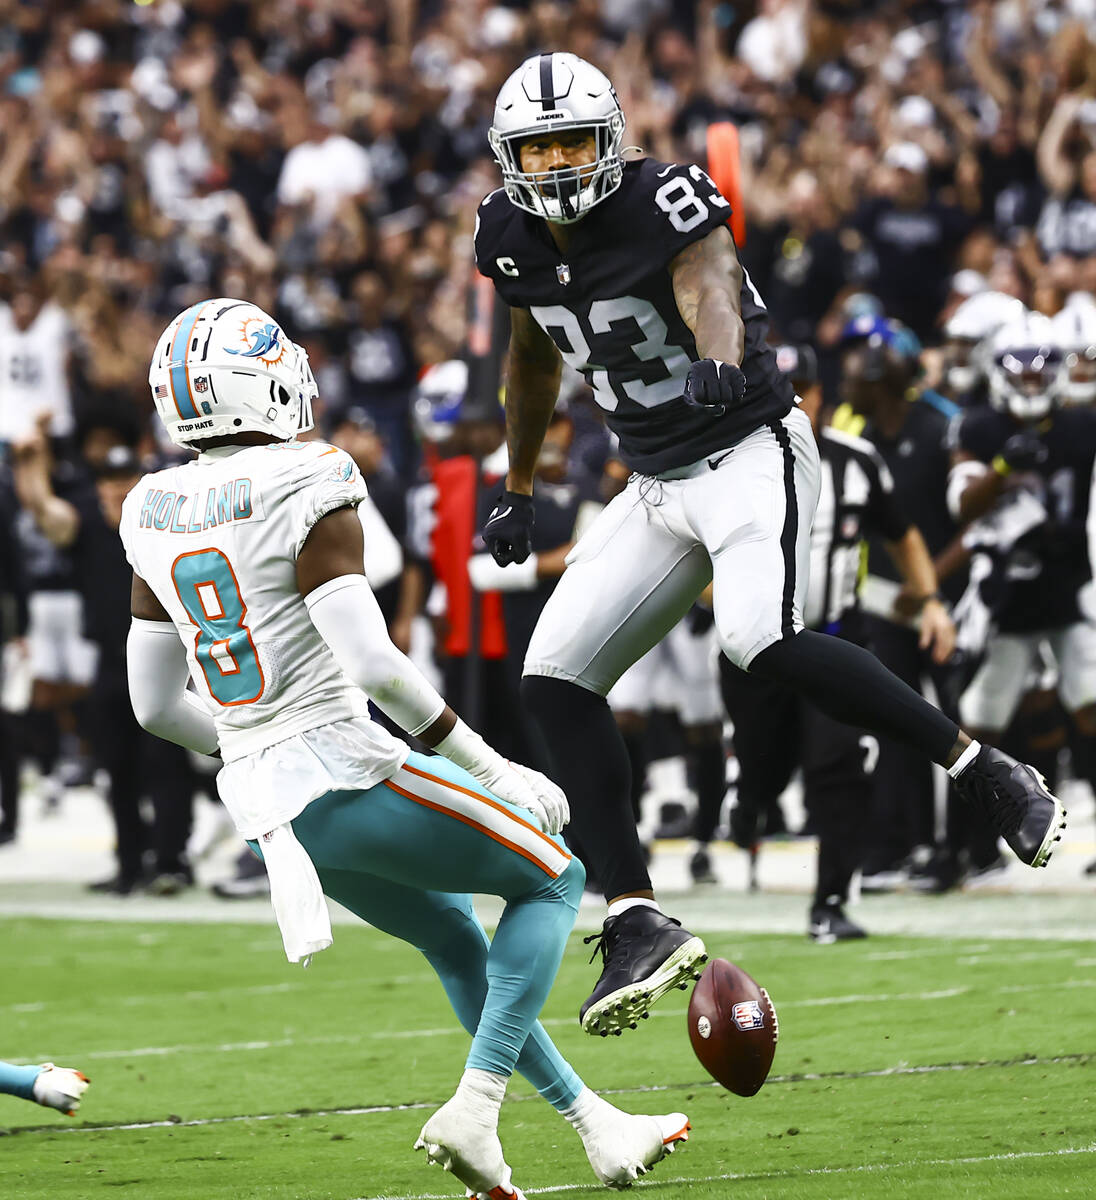 Las Vegas Raiders tight end Darren Waller (83) celebrates after a play against the Miami Dolphi ...